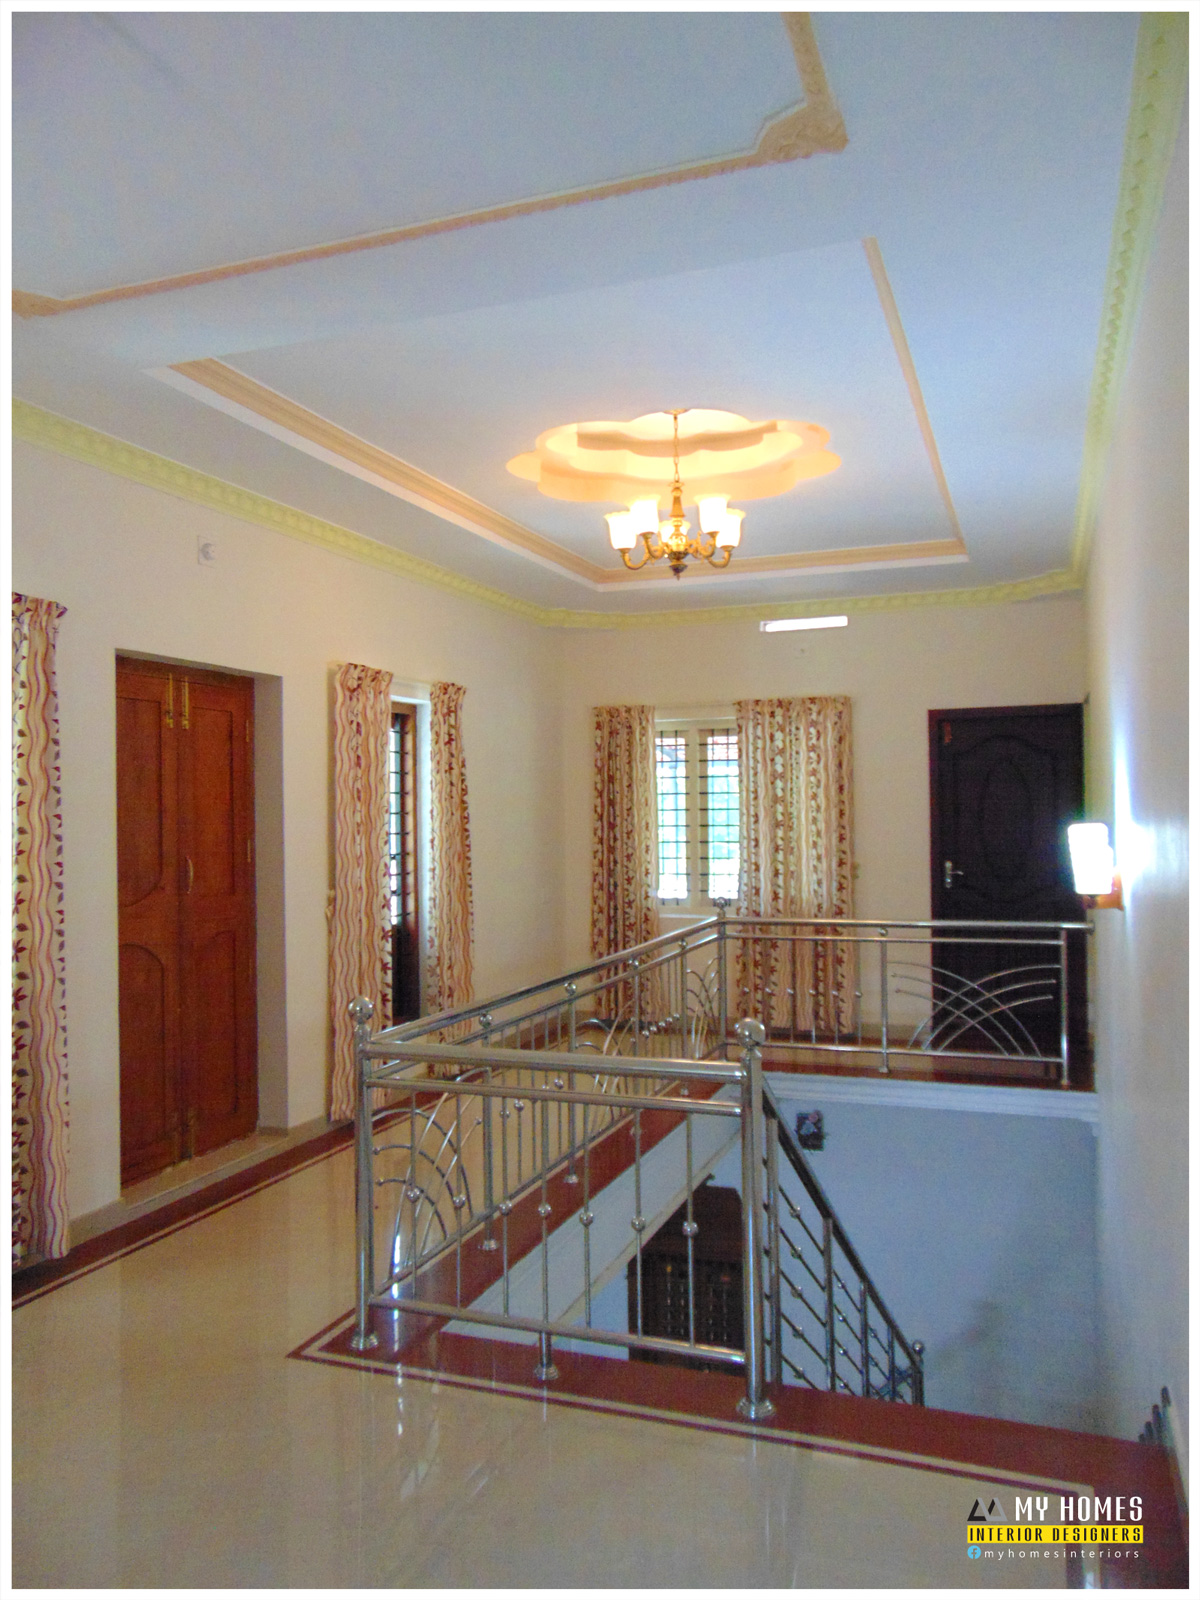 Kerala interior design ideas from designing company thrissur for Interior designs photos for home